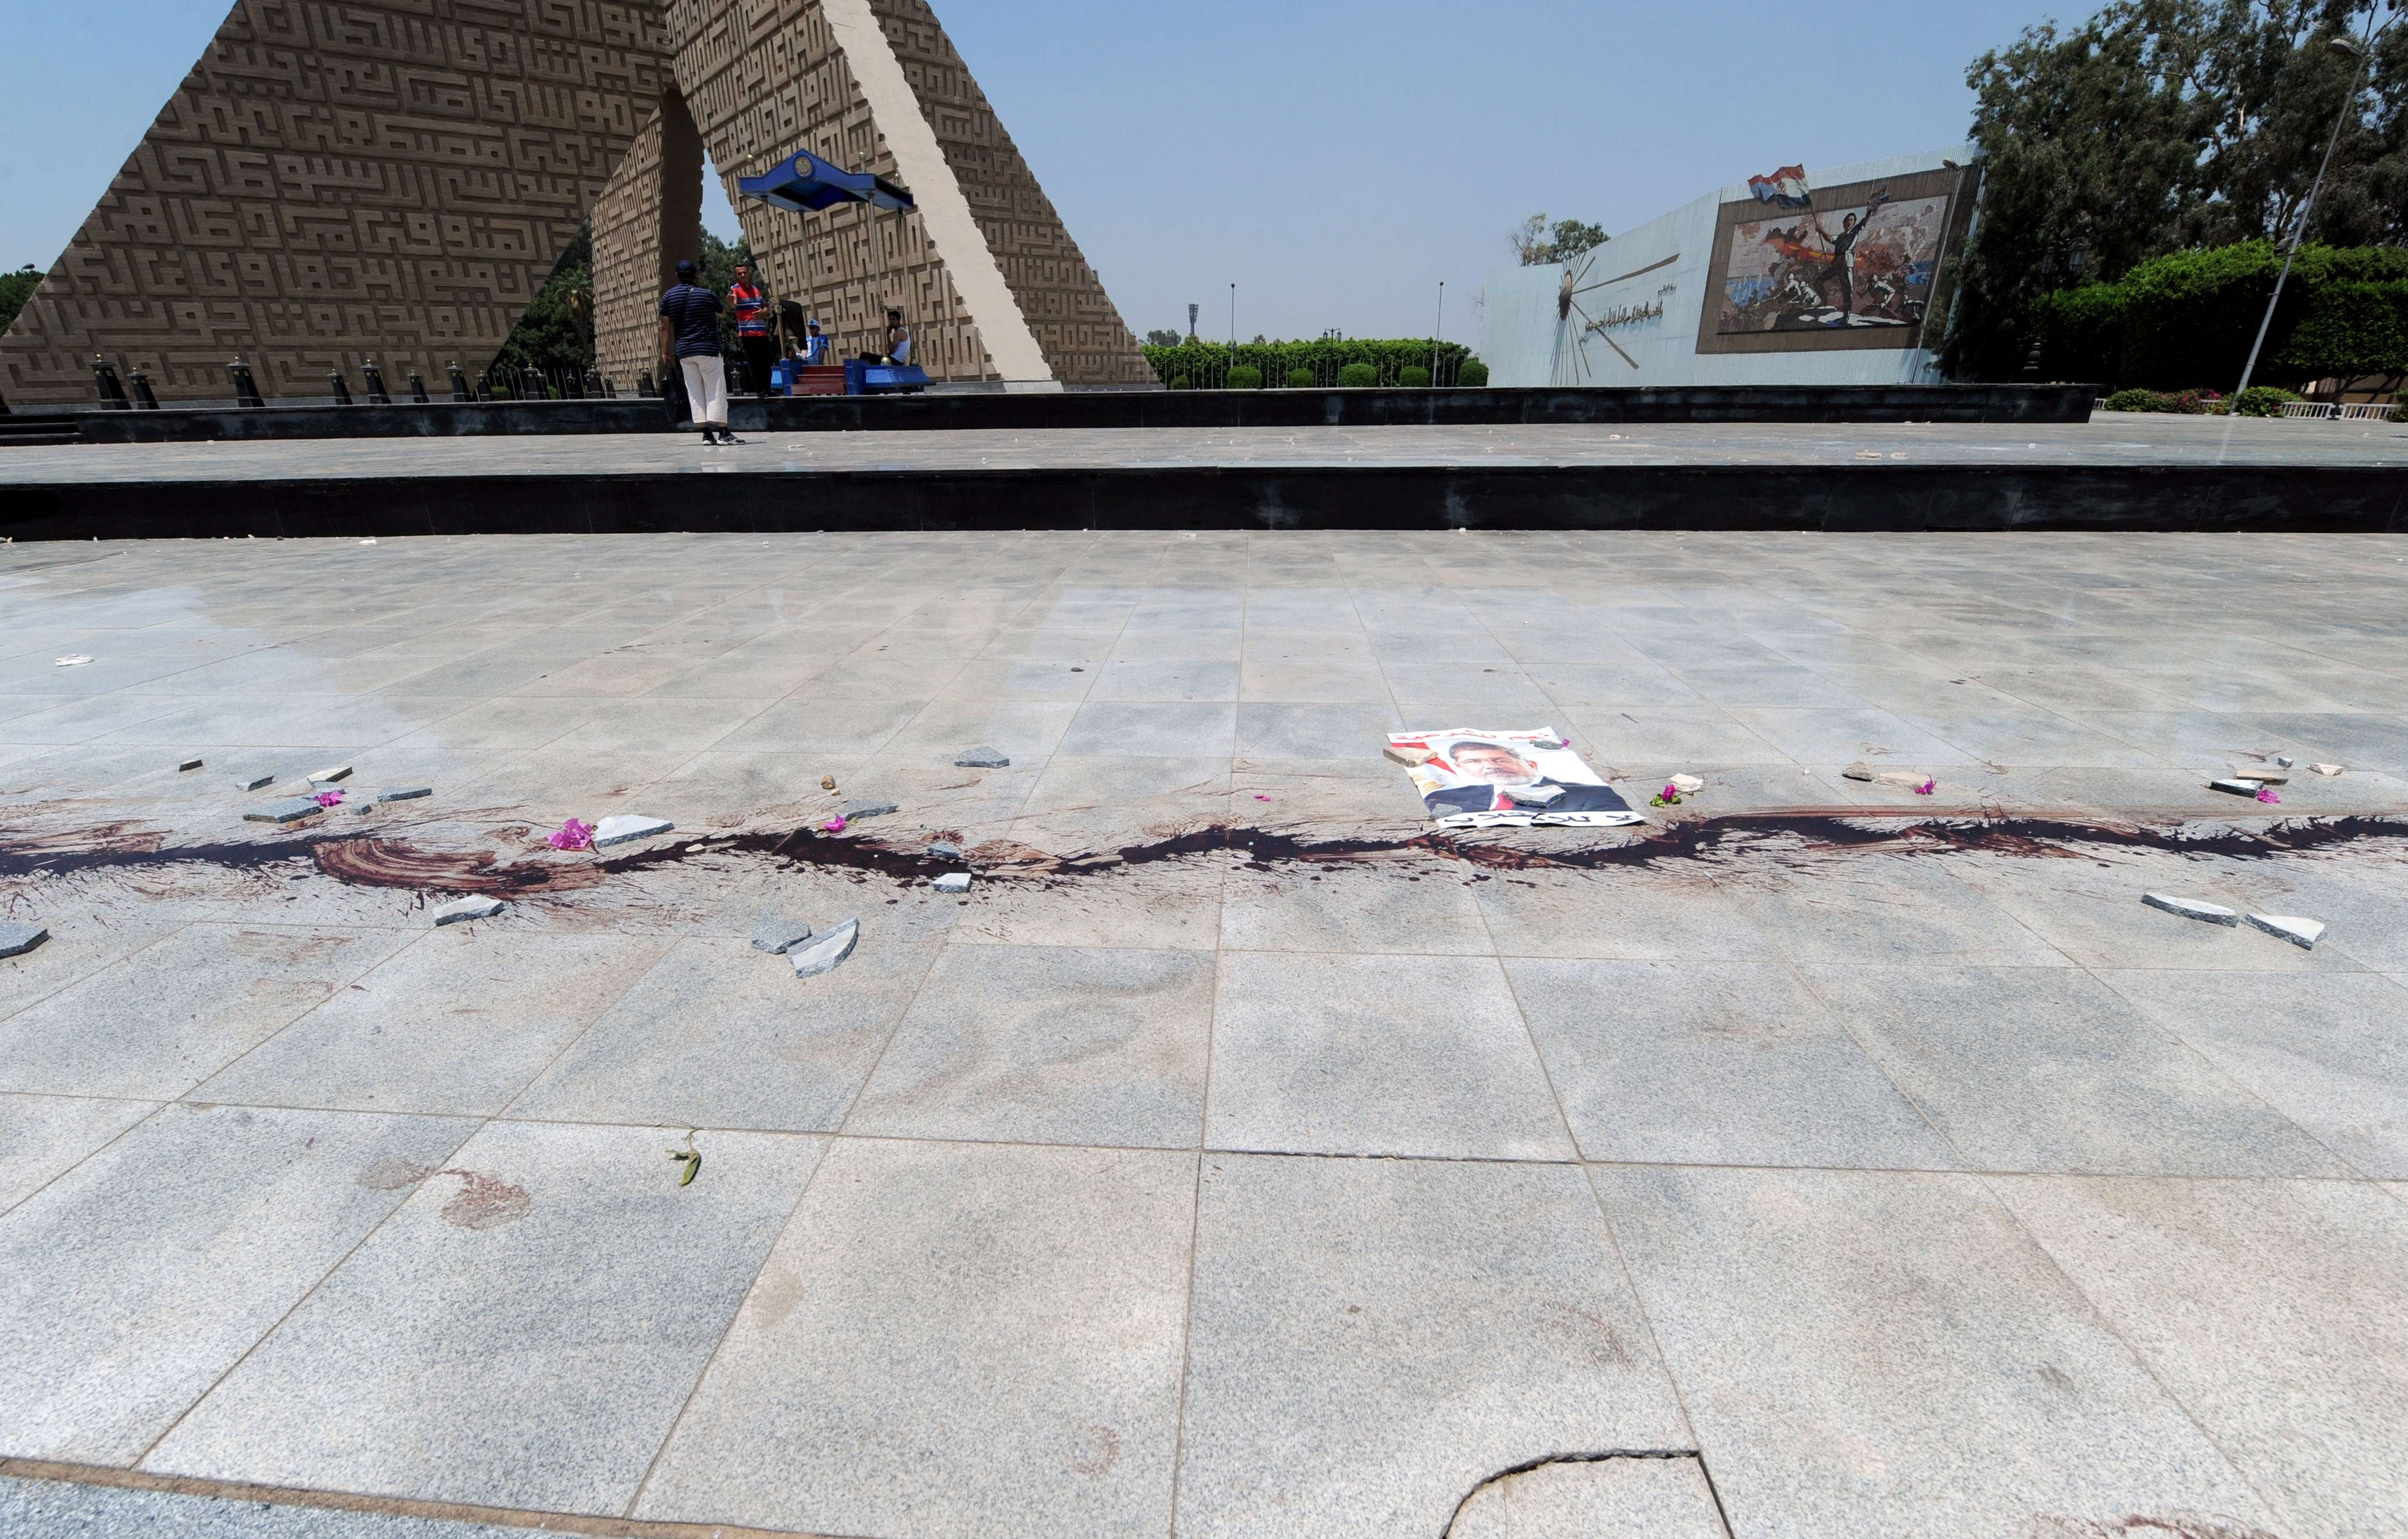 A poster of ousted Egyptian president Mohamed Morsi is placed on the ground next to a trail of blood near the tomb of former President Anwar al-Sadat in Cairo on July 27, 2013. (AFP Photo)